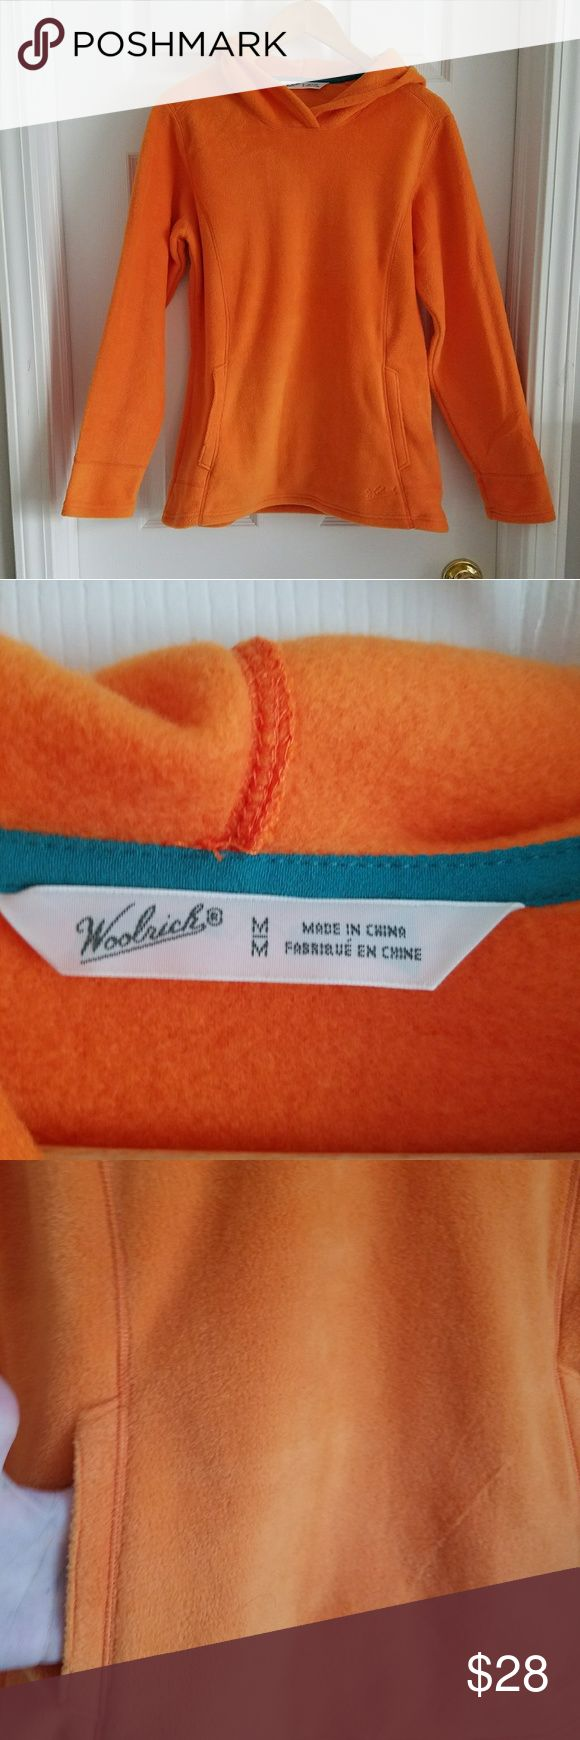 Woolrich Women's Orange Soft Fleece Hood pullover Beautiful, like new orange Woolrich hooded pullover. Never worn, just took the tags off. Super soft and cozy. Size medium Woolrich Tops Sweatshirts & Hoodies